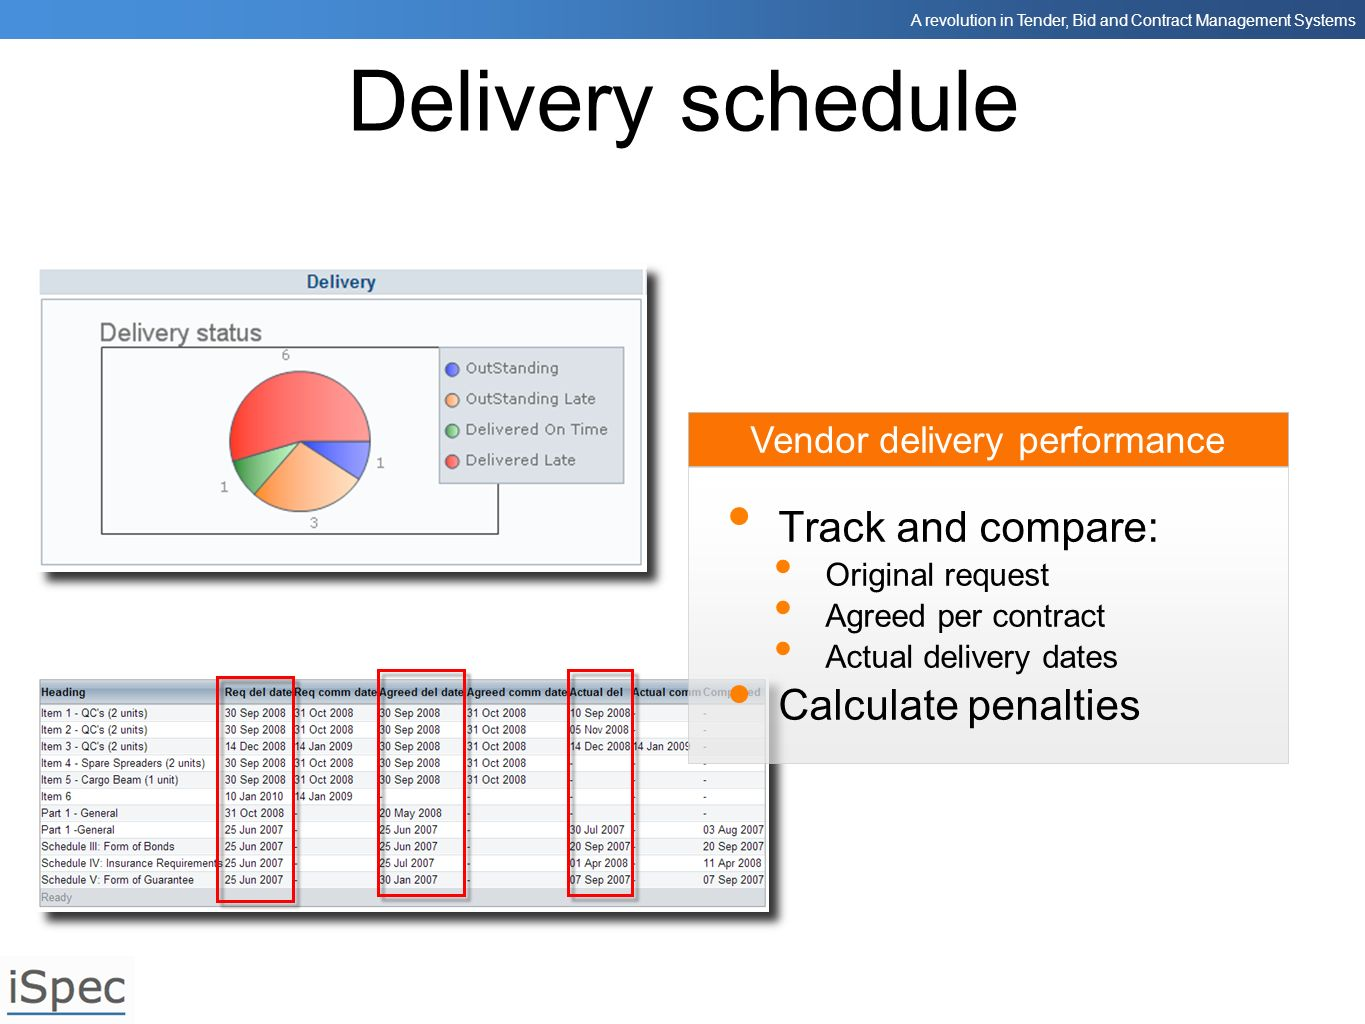 Vendor delivery performance